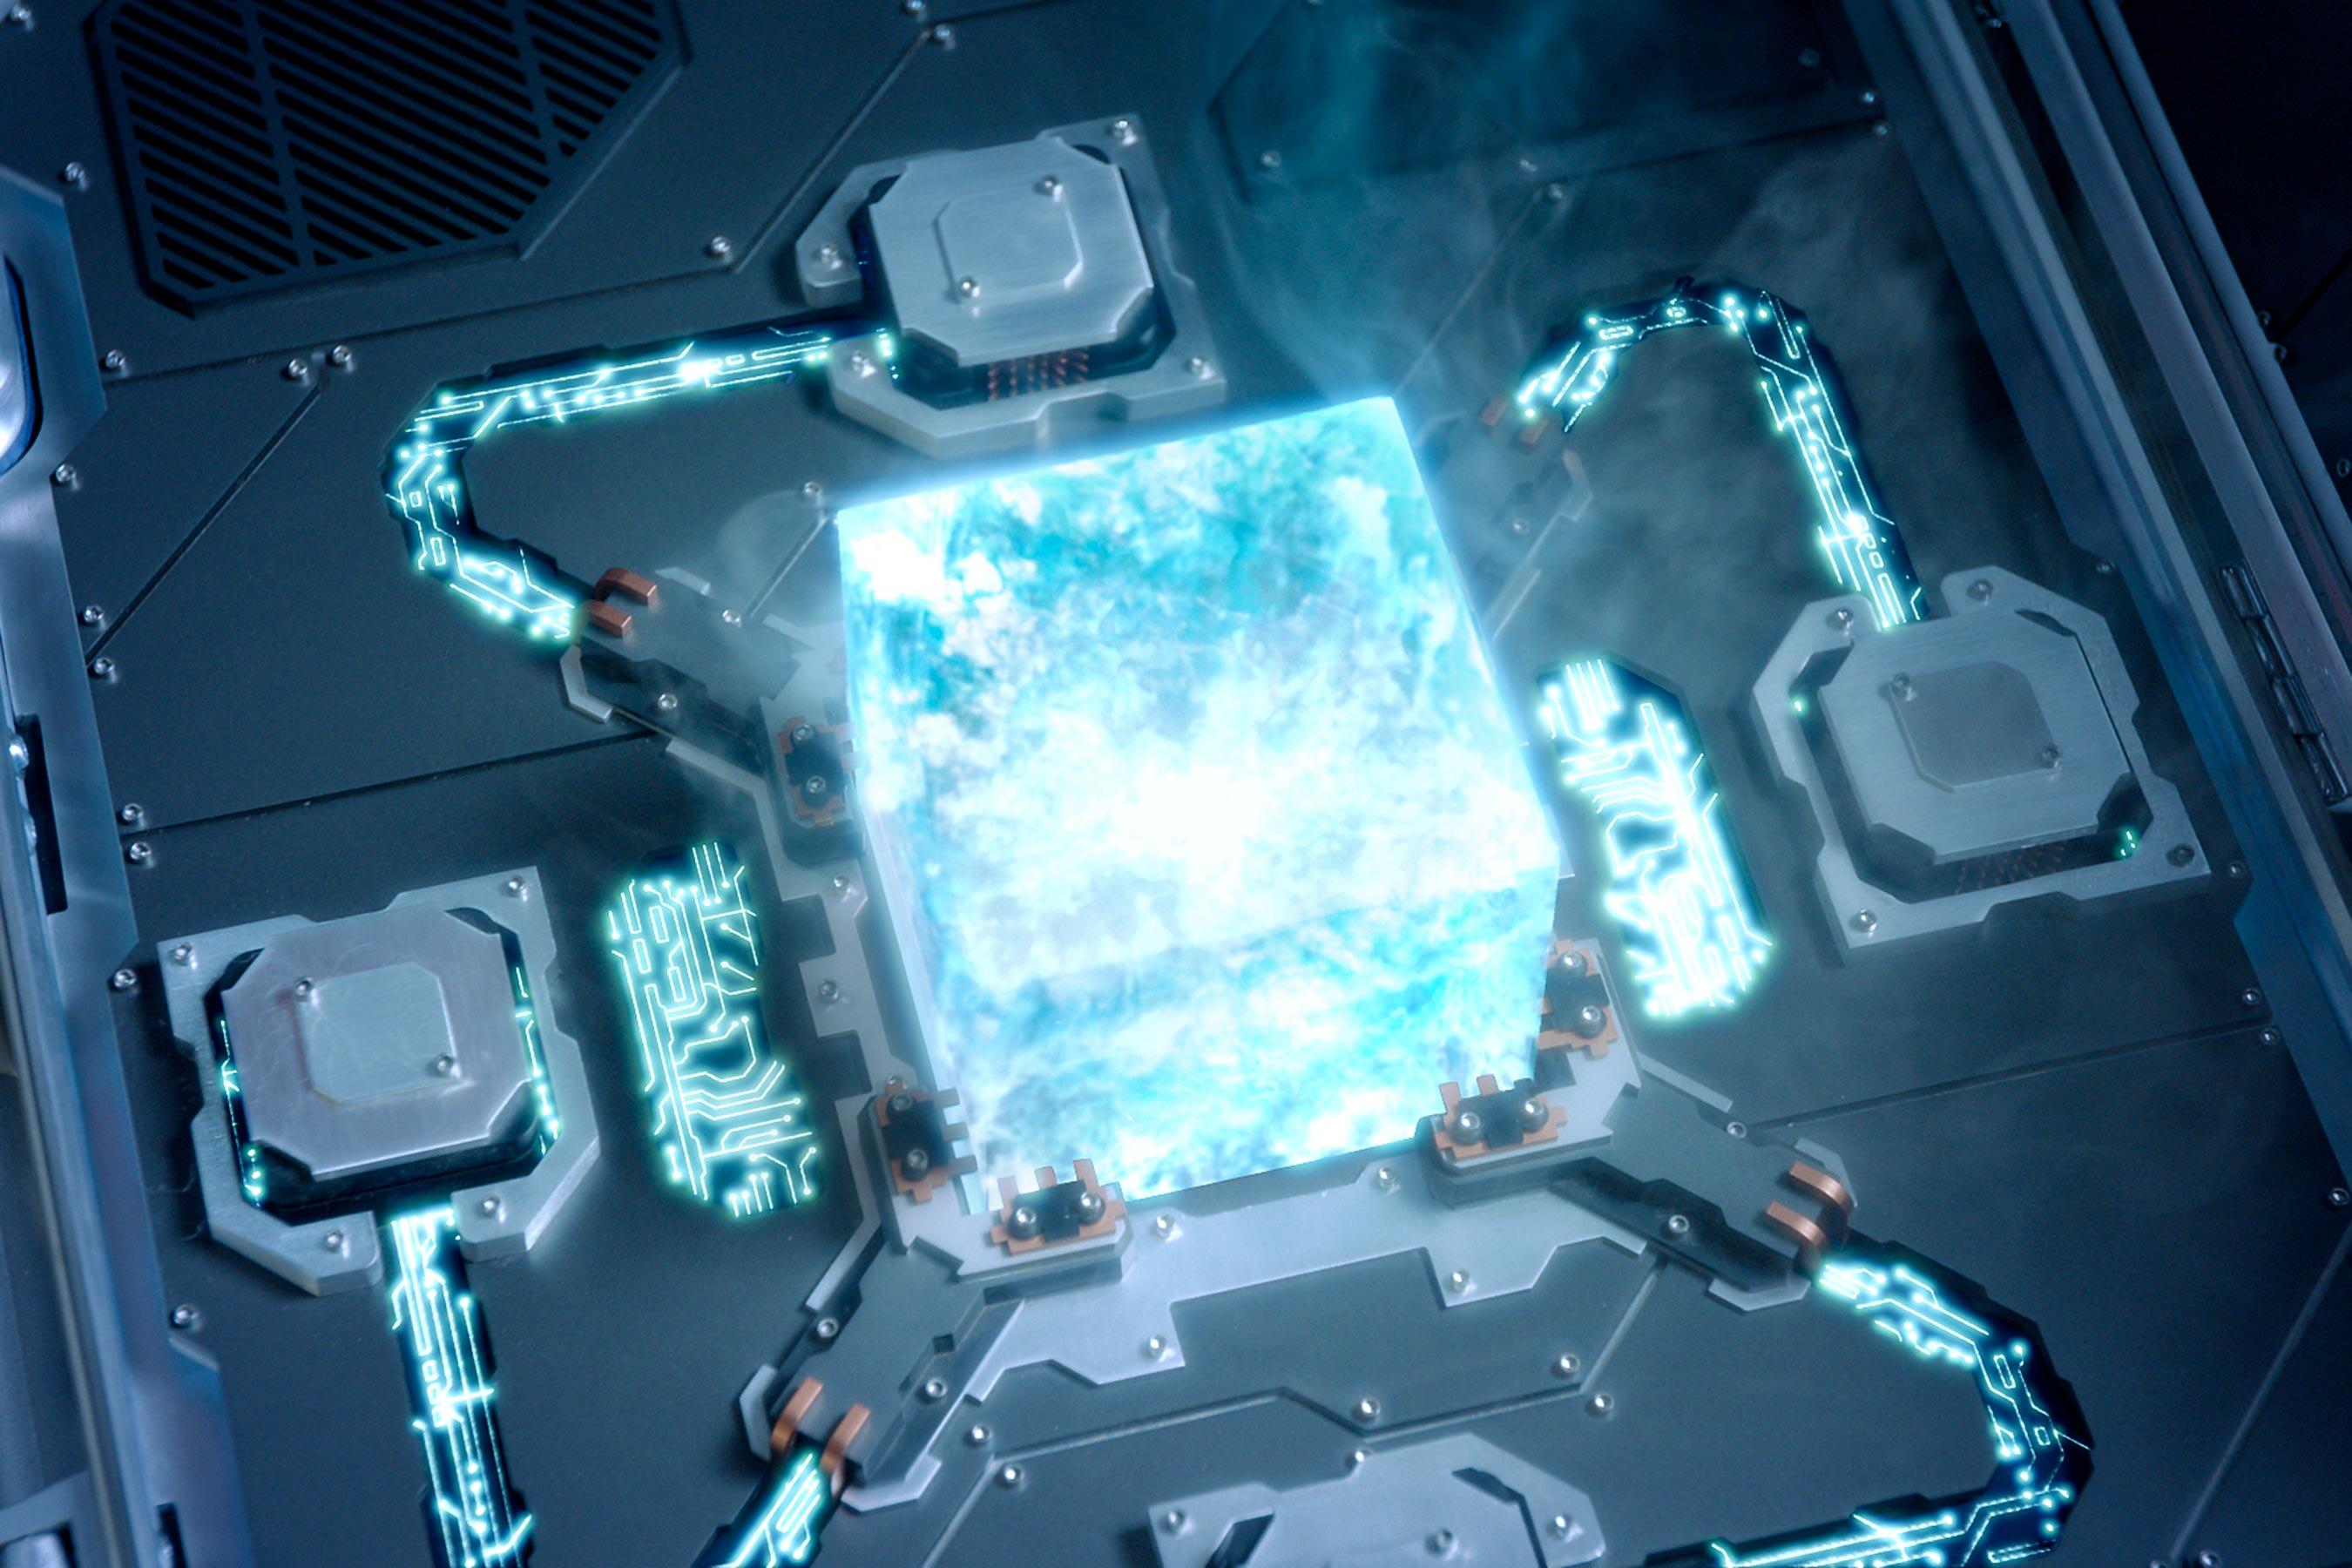 The Space Stone (otherwise known as the Tesseract) is the one with the most screen time so far, first showing up in <em>Thor</em>'s end-credits scene, then during World War II, when the Red Skull used the Tesseract to create weapons for Hydra. Finally, as we saw in <em>The Avengers</em>, the cube's primary function was revealed to be to create portals and control space. <strong>Current location:</strong> With Loki, who stole it from Odin's vault.